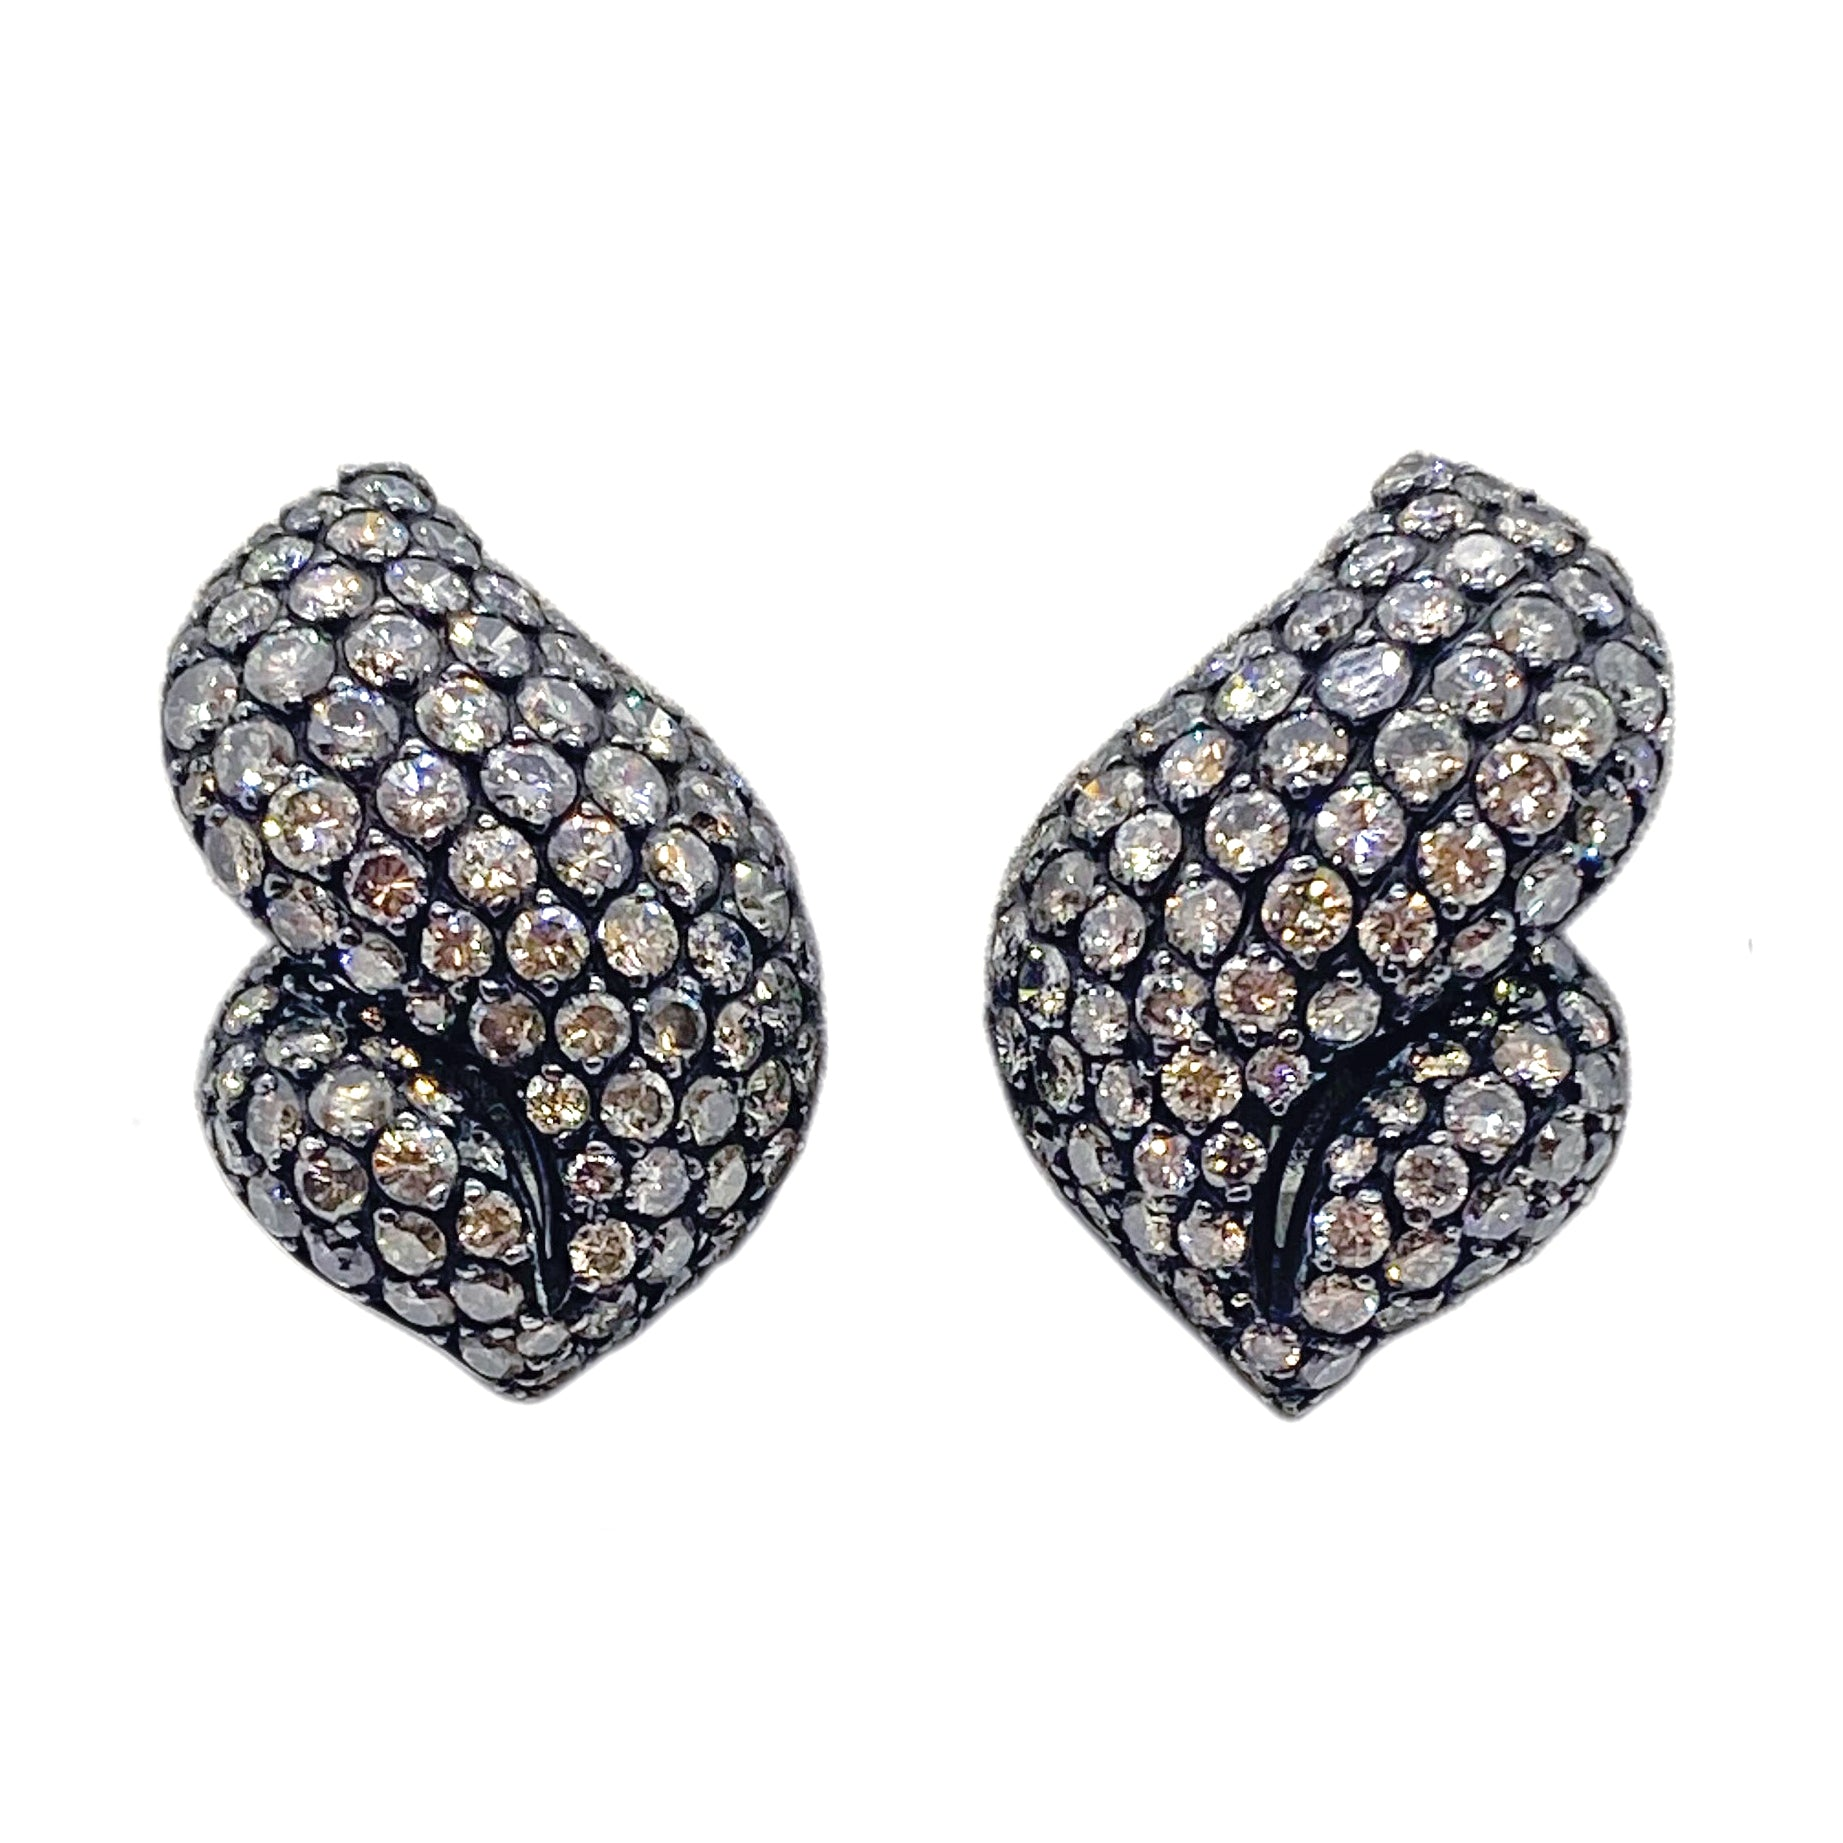 Gioia France Gold 6 Carat Diamond Earrings